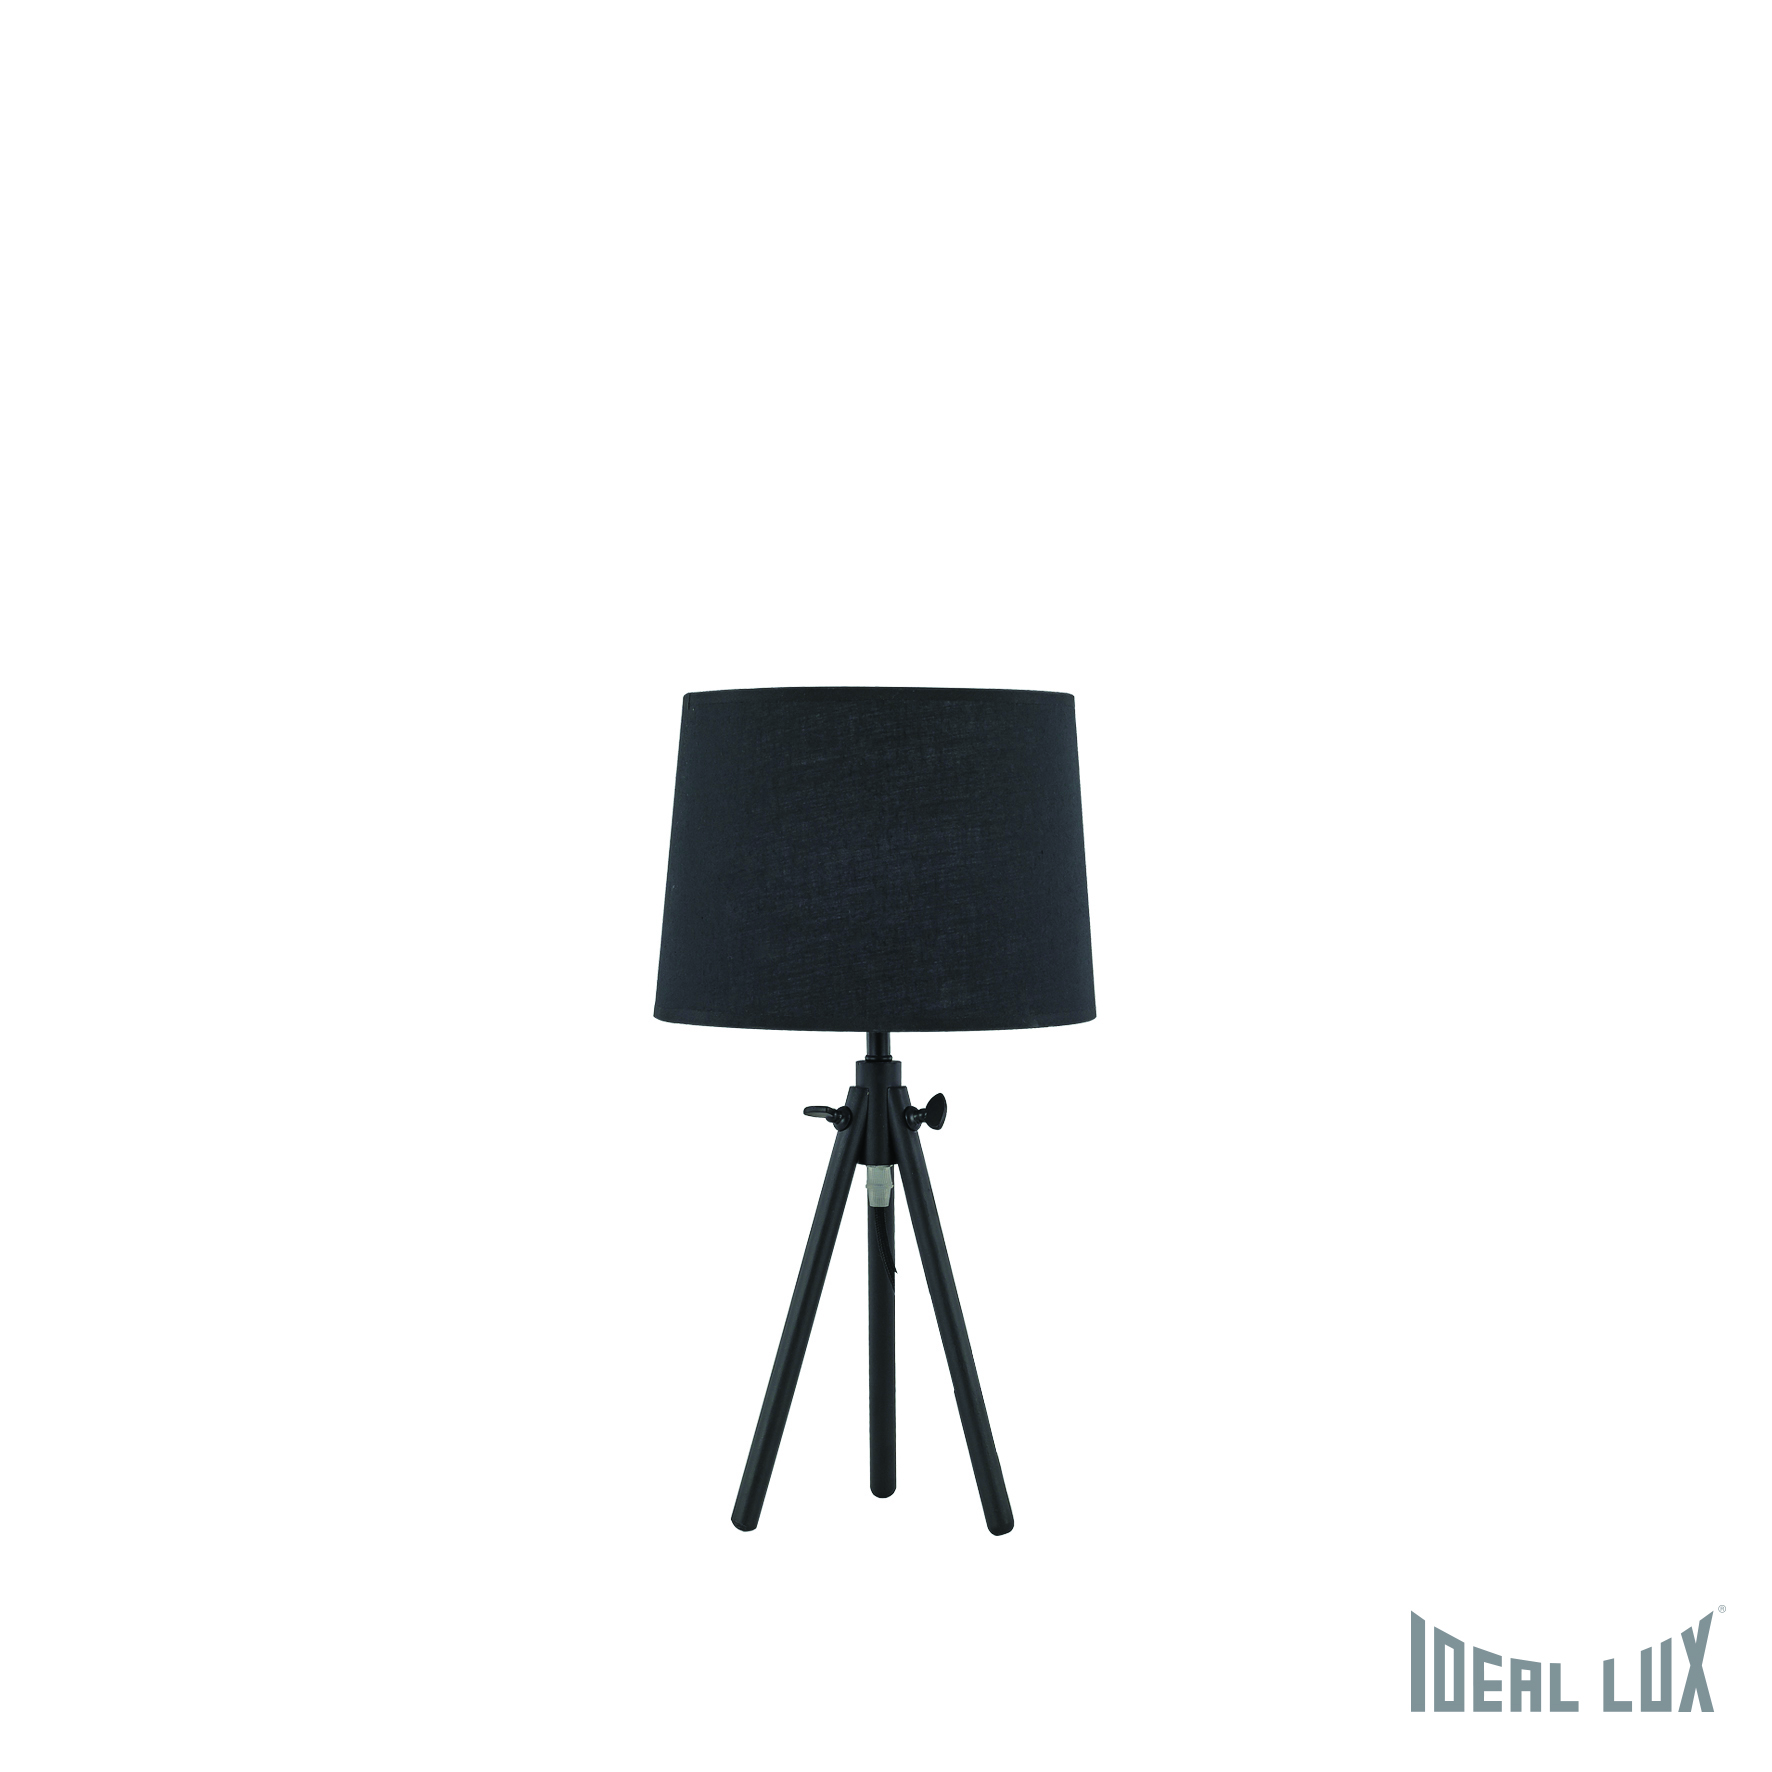 Настольная лампа Ideal Lux York YORK TL1 SMALL NERO настольная лампа ideal lux birillo tl1 small fume 116570